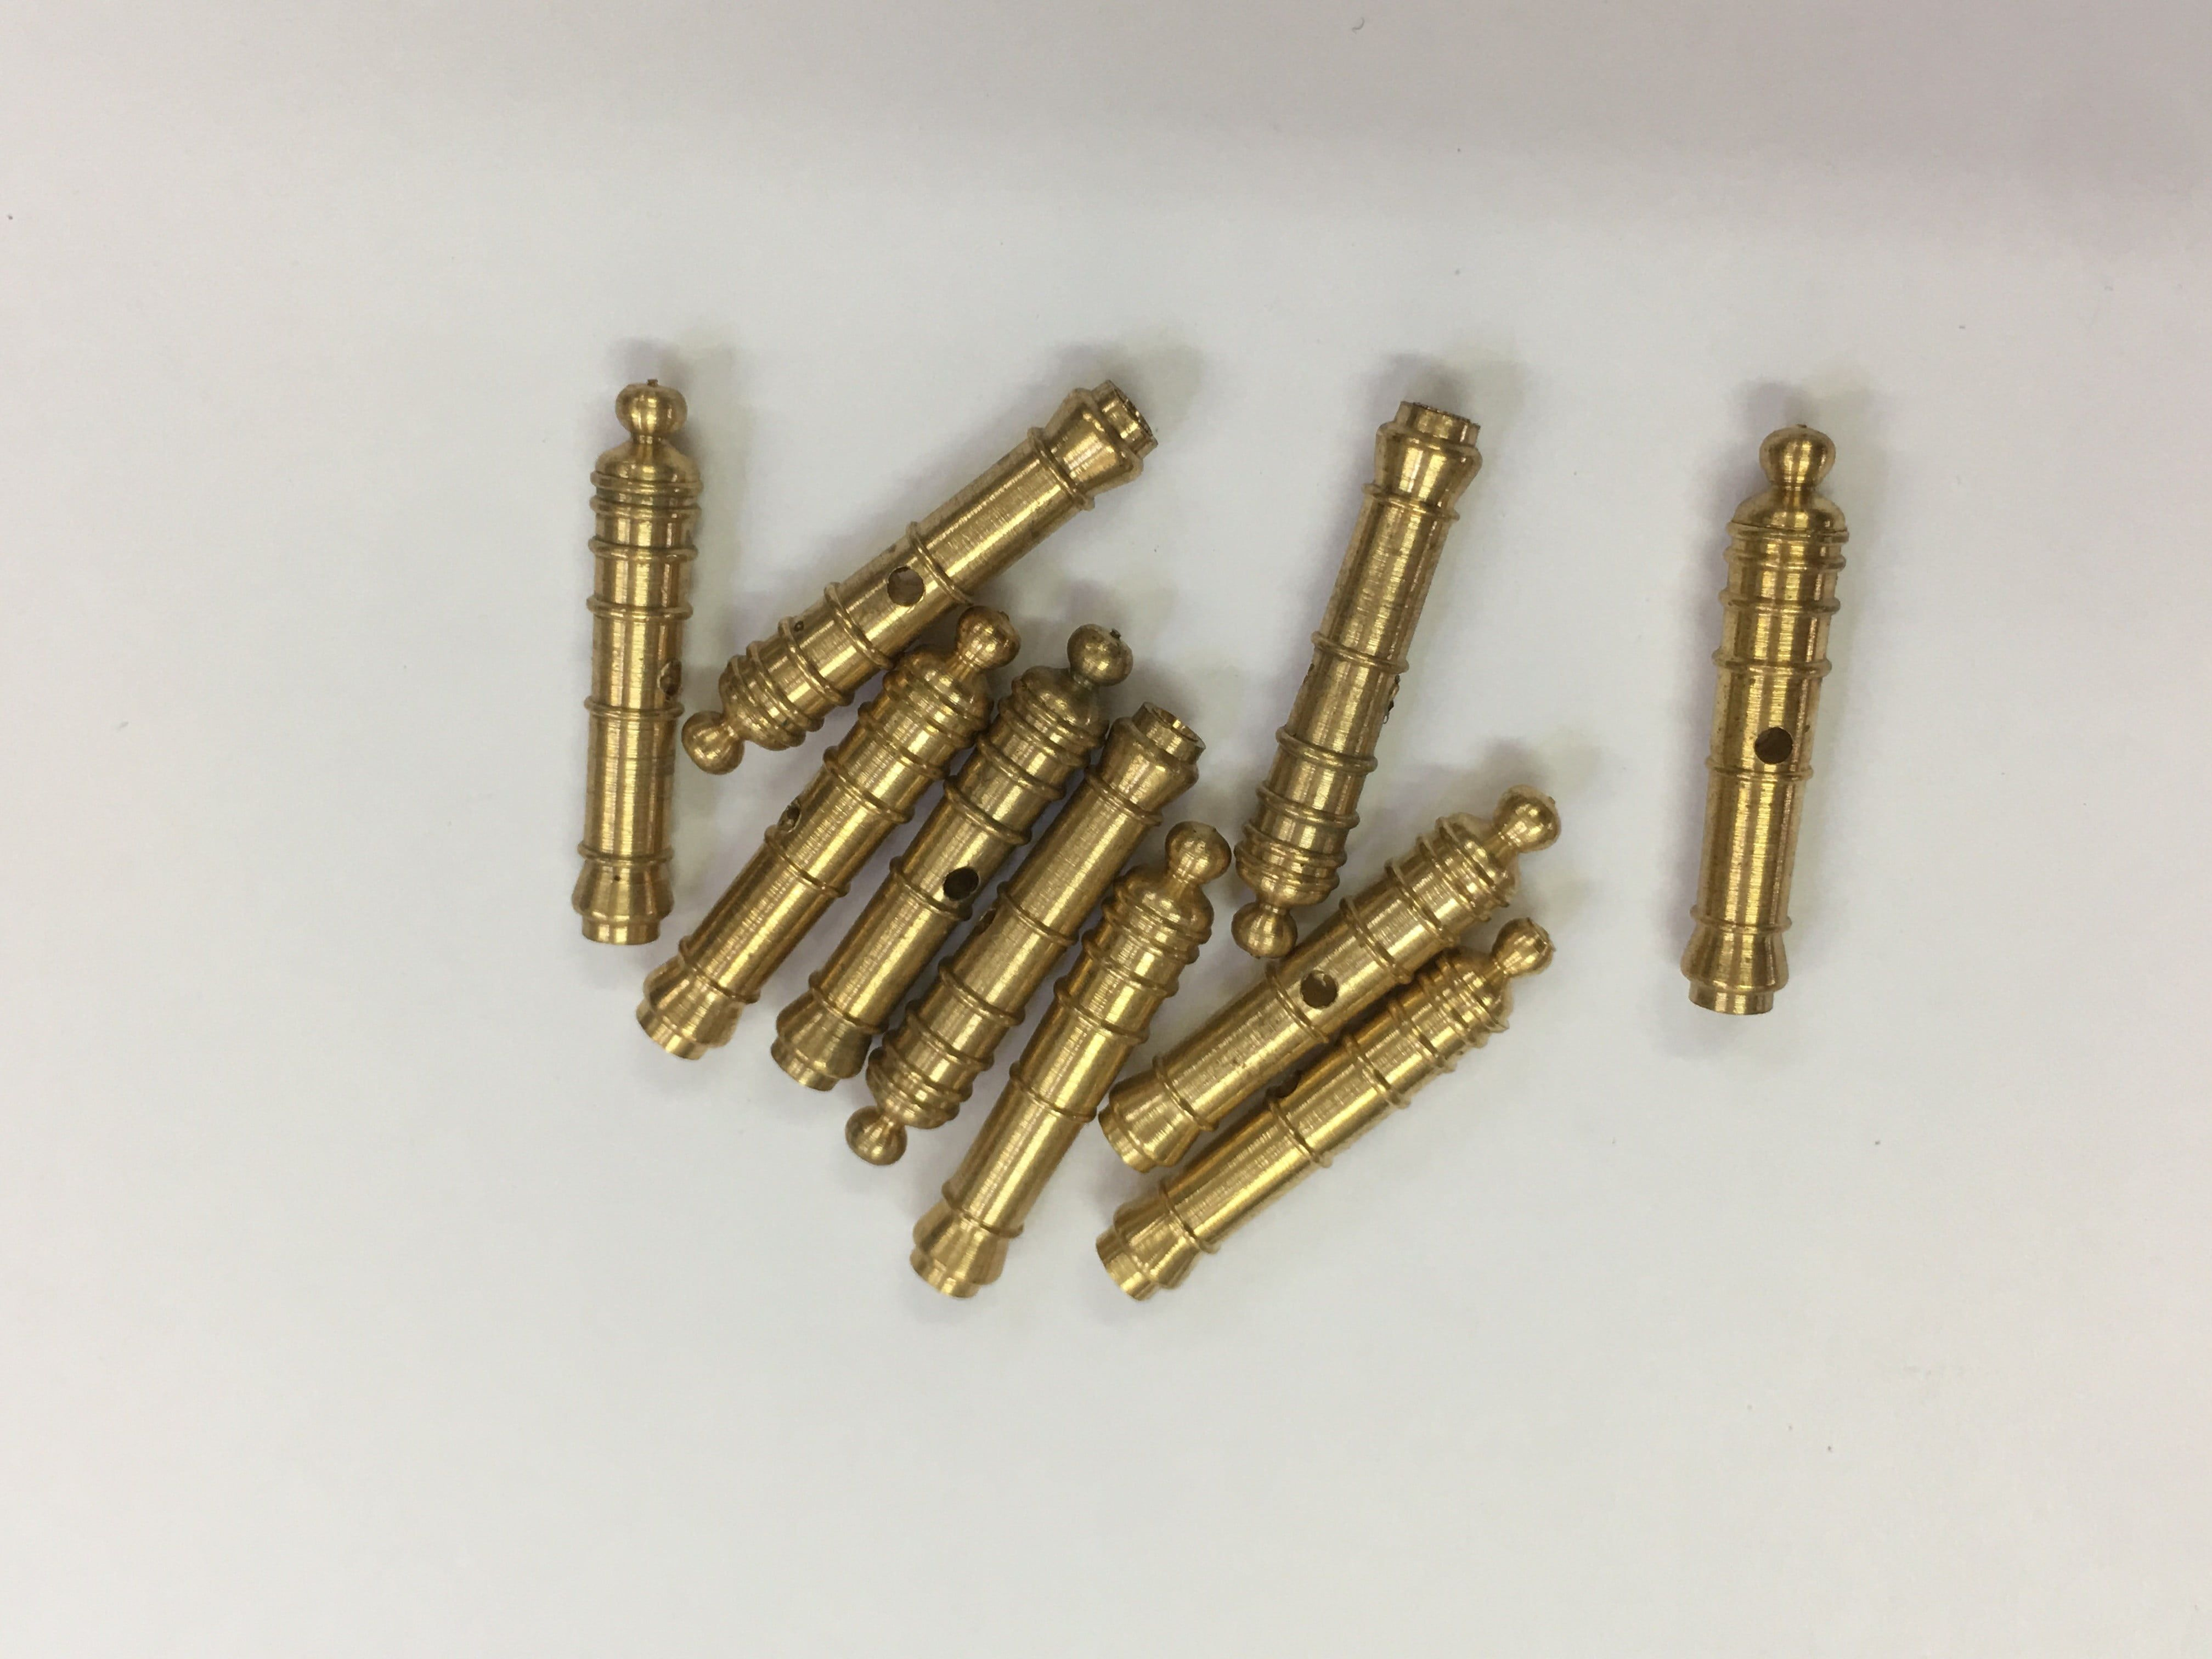 Mantua Models Solid Brass Cannons - 20mm Brass Cannons (Pack of 5)